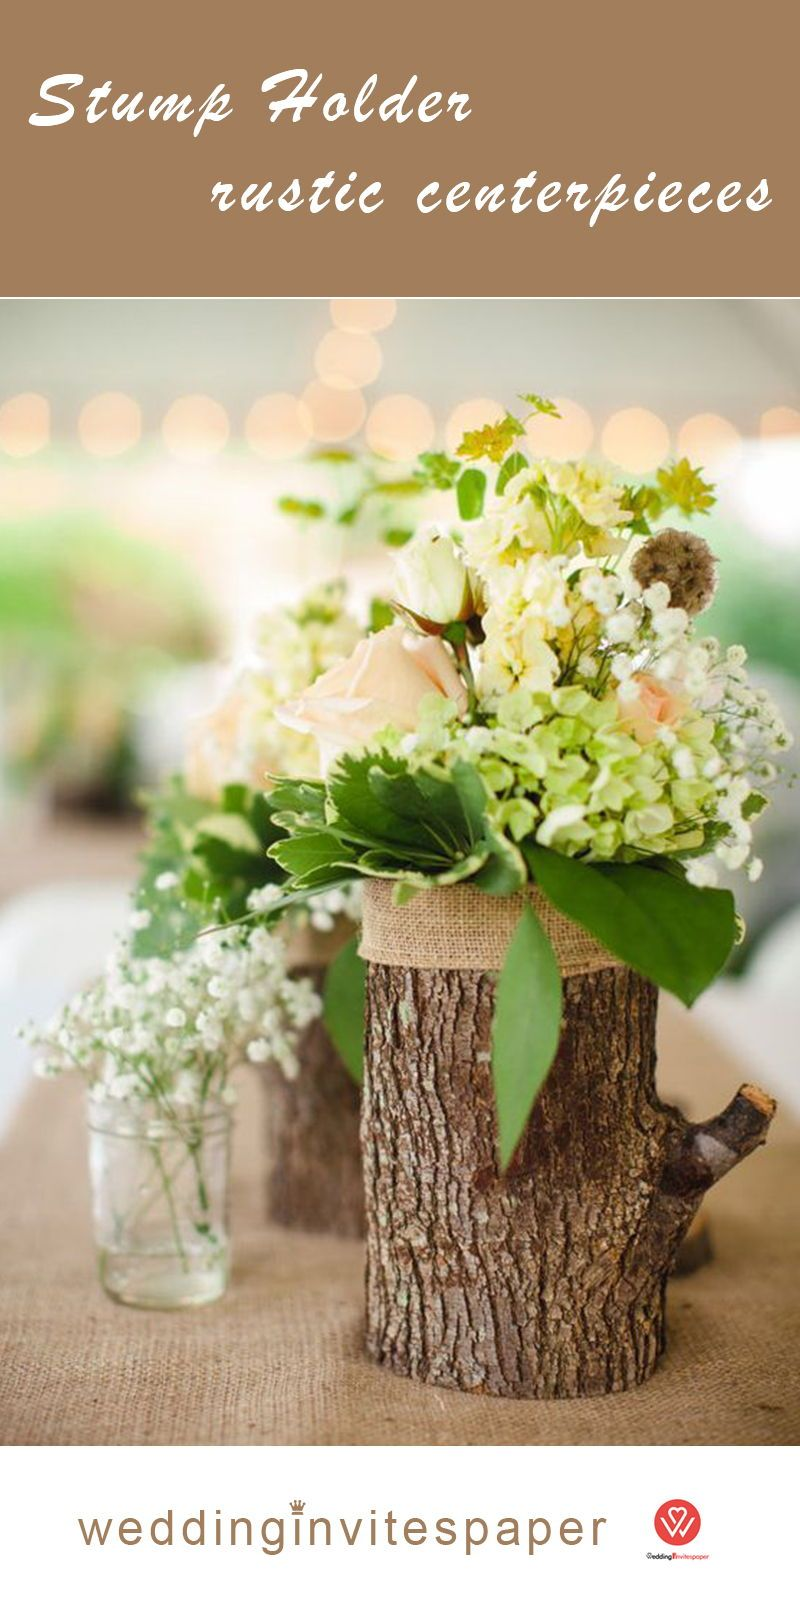 Top 23 Remarkable Rustic Wedding Centerpieces Wooden Stump With Greenery And F Natural Wedding Decor Wedding Table Decorations Diy Rustic Wedding Table Decor